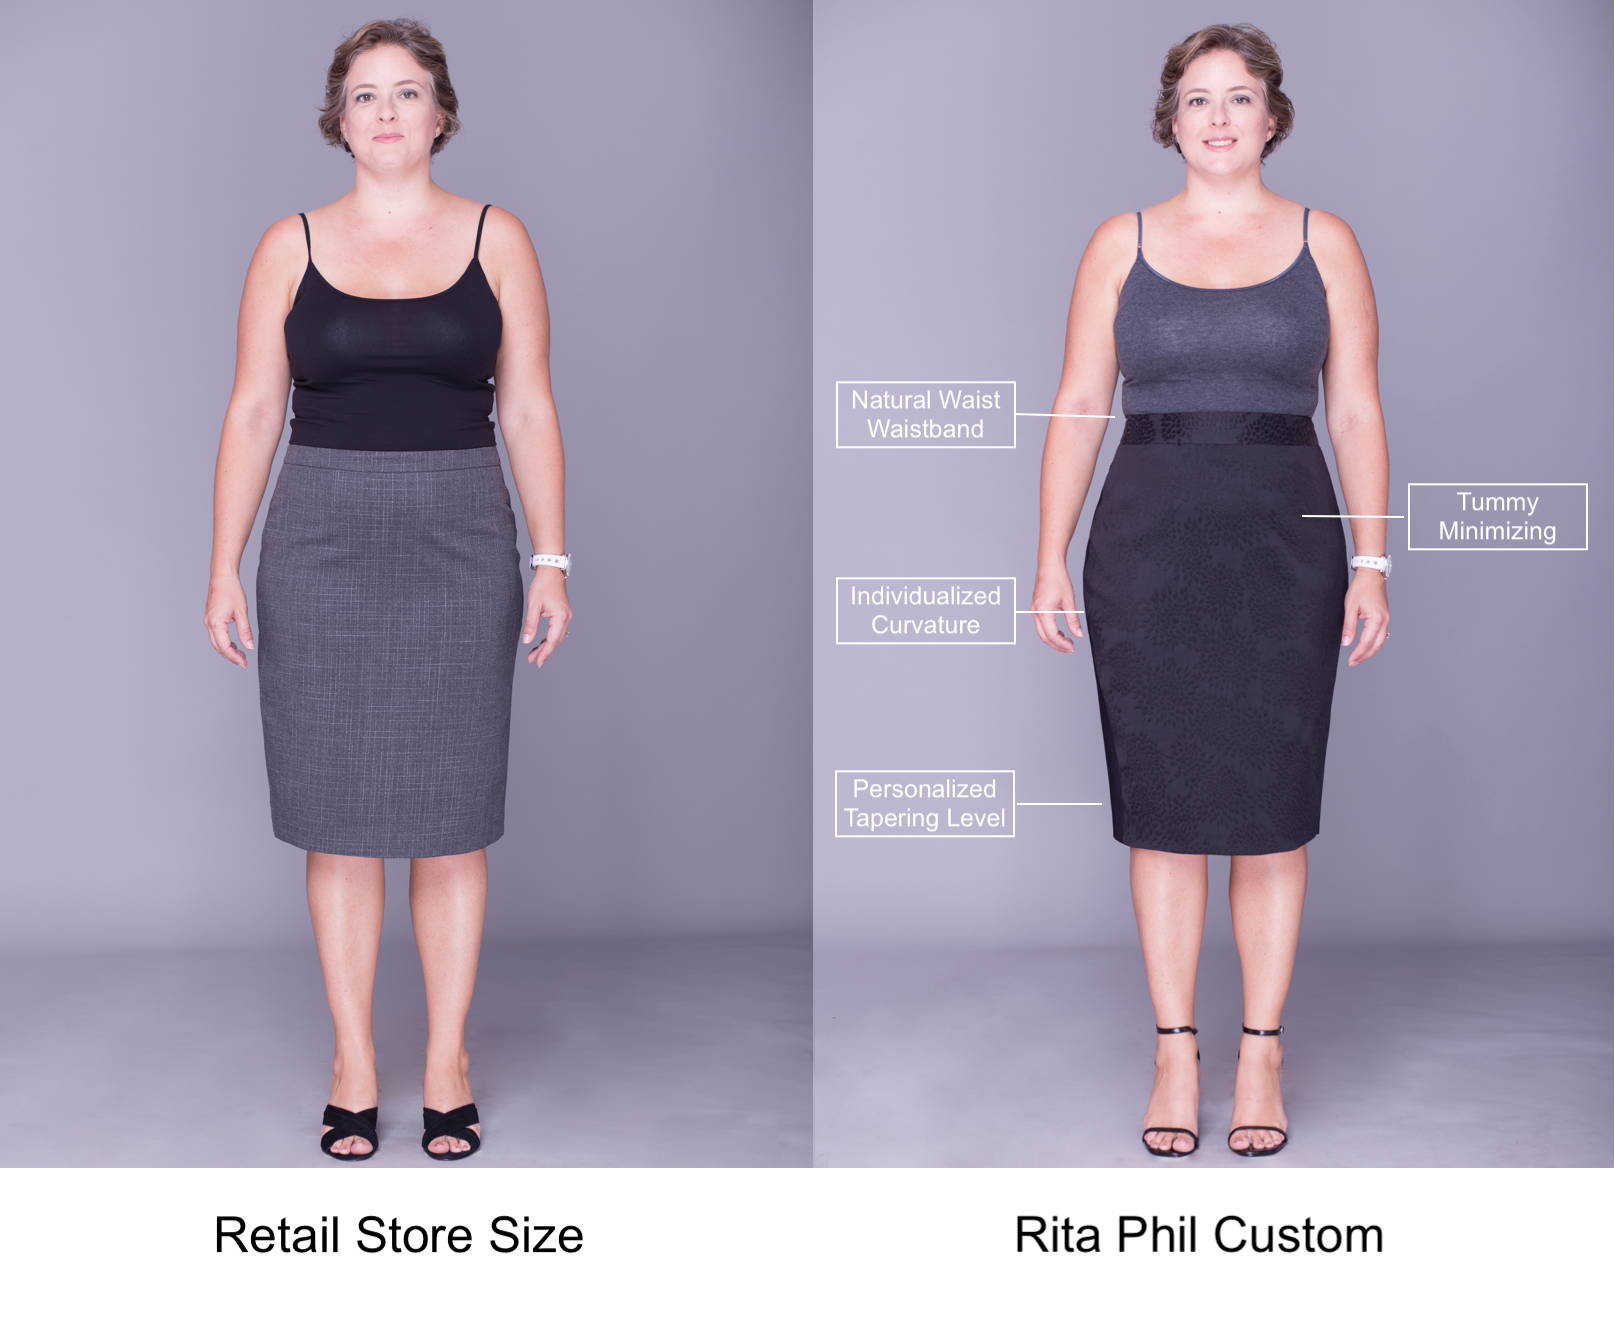 Rita Phil custom pencil skirts | Algorithm 2_Comparison with retail store size skirt